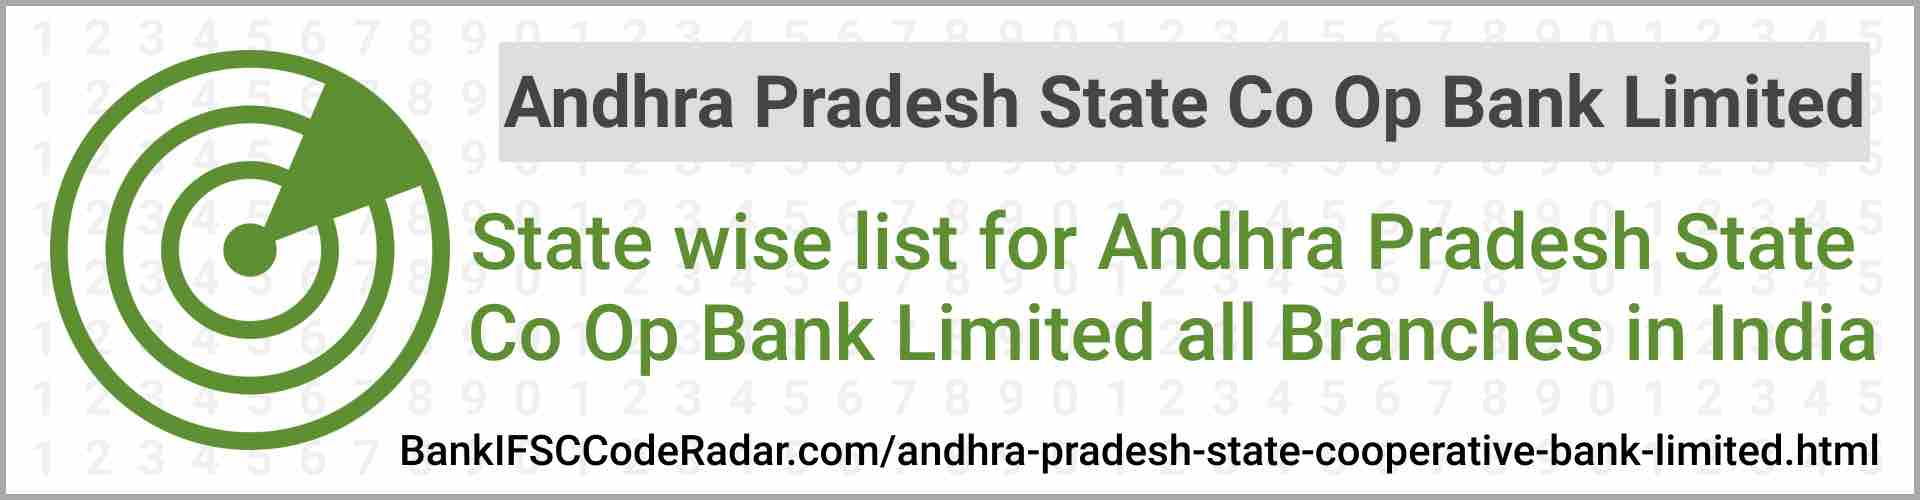 Andhra Pradesh State Cooperative Bank Limited All Branches India